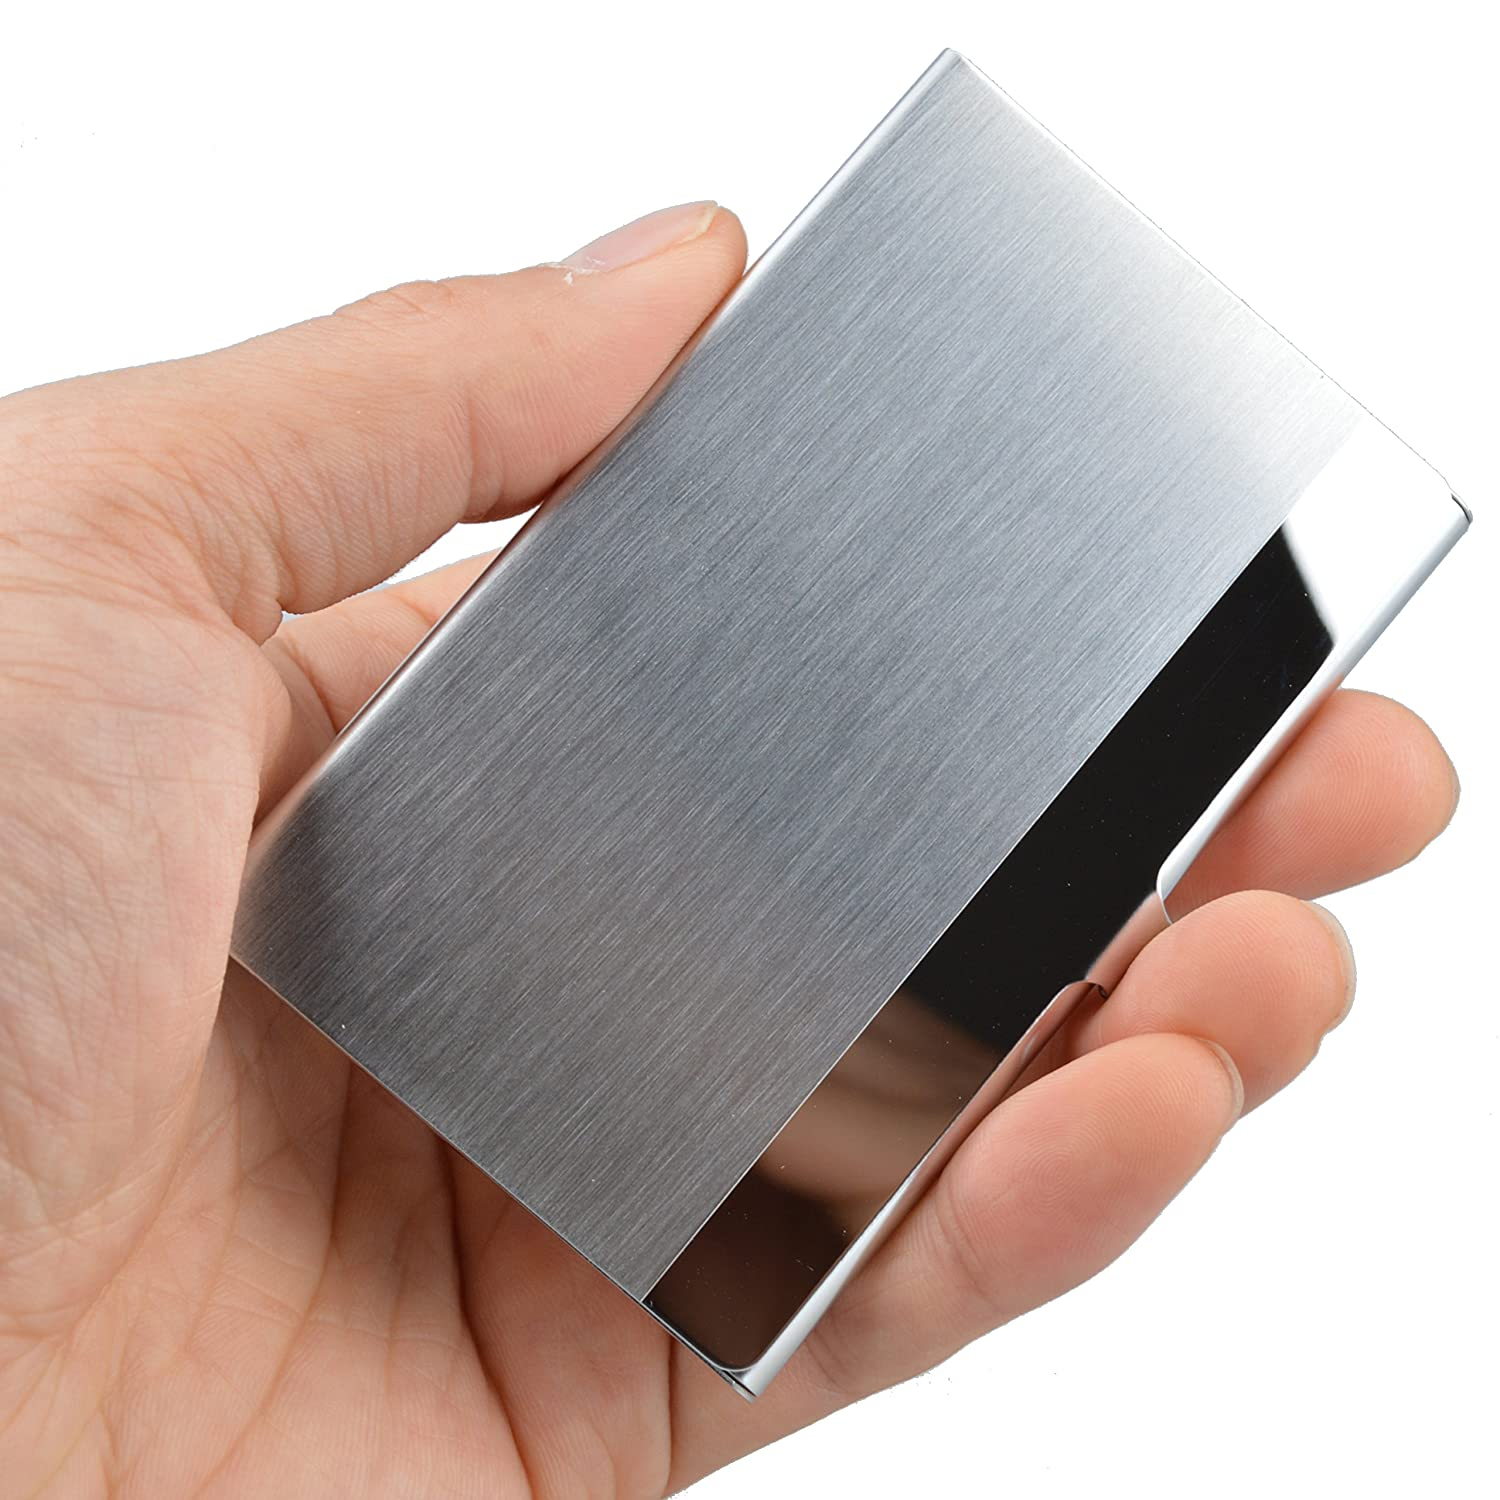 Amazon maxgear professional business card holder business amazon maxgear professional business card holder business card case stainless steel card holder keep business cards in immaculate condition ns magicingreecefo Images